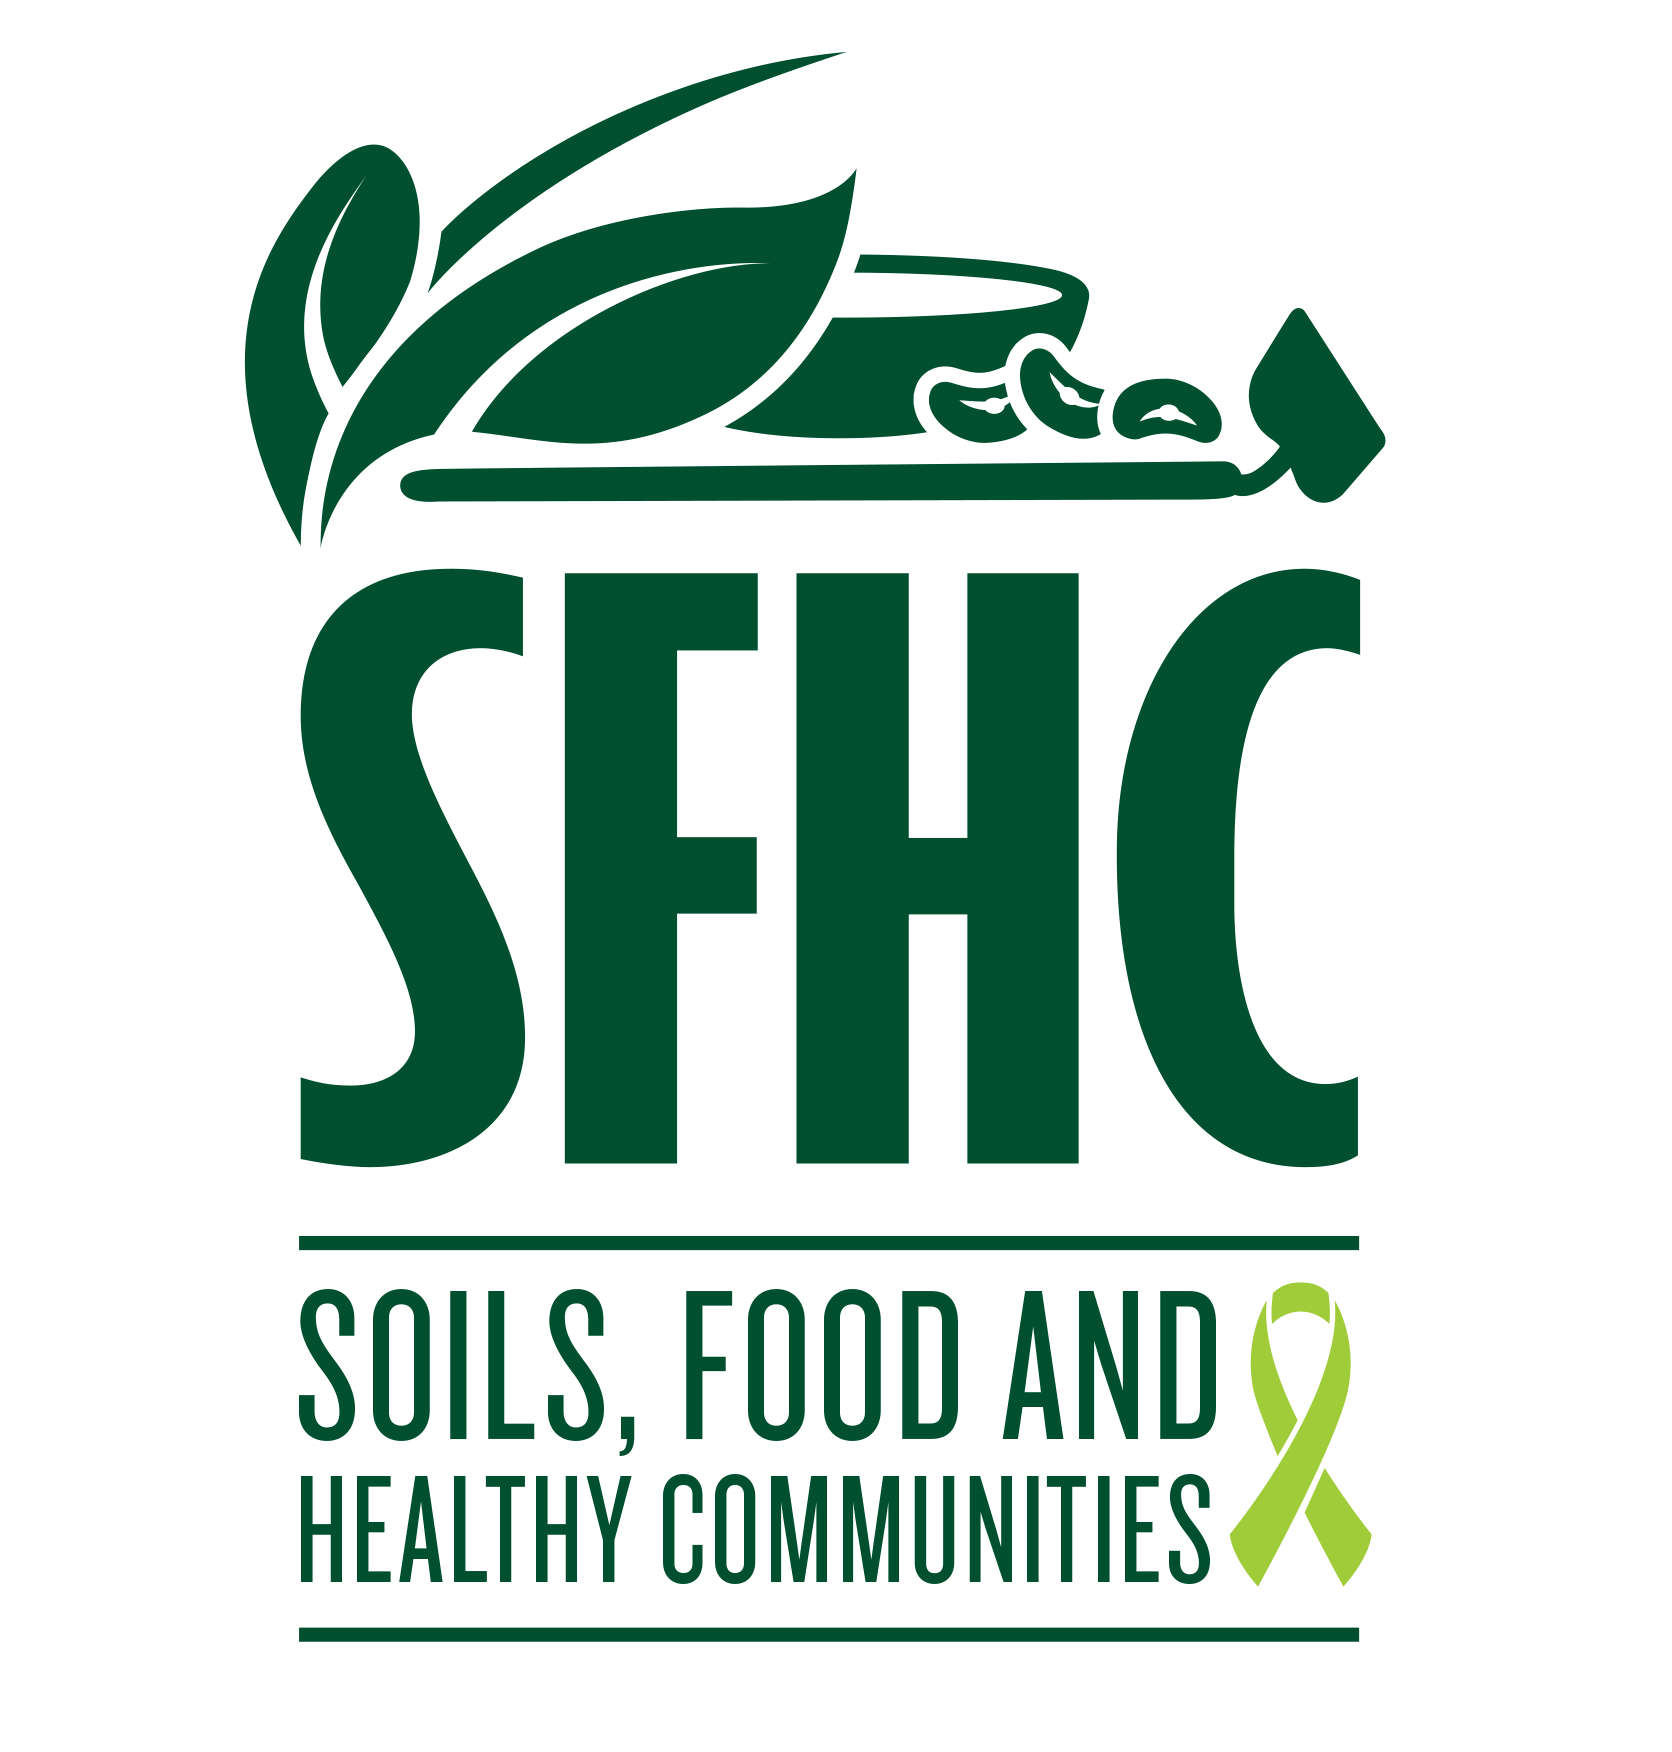 Soils, Food and Healthy Communities